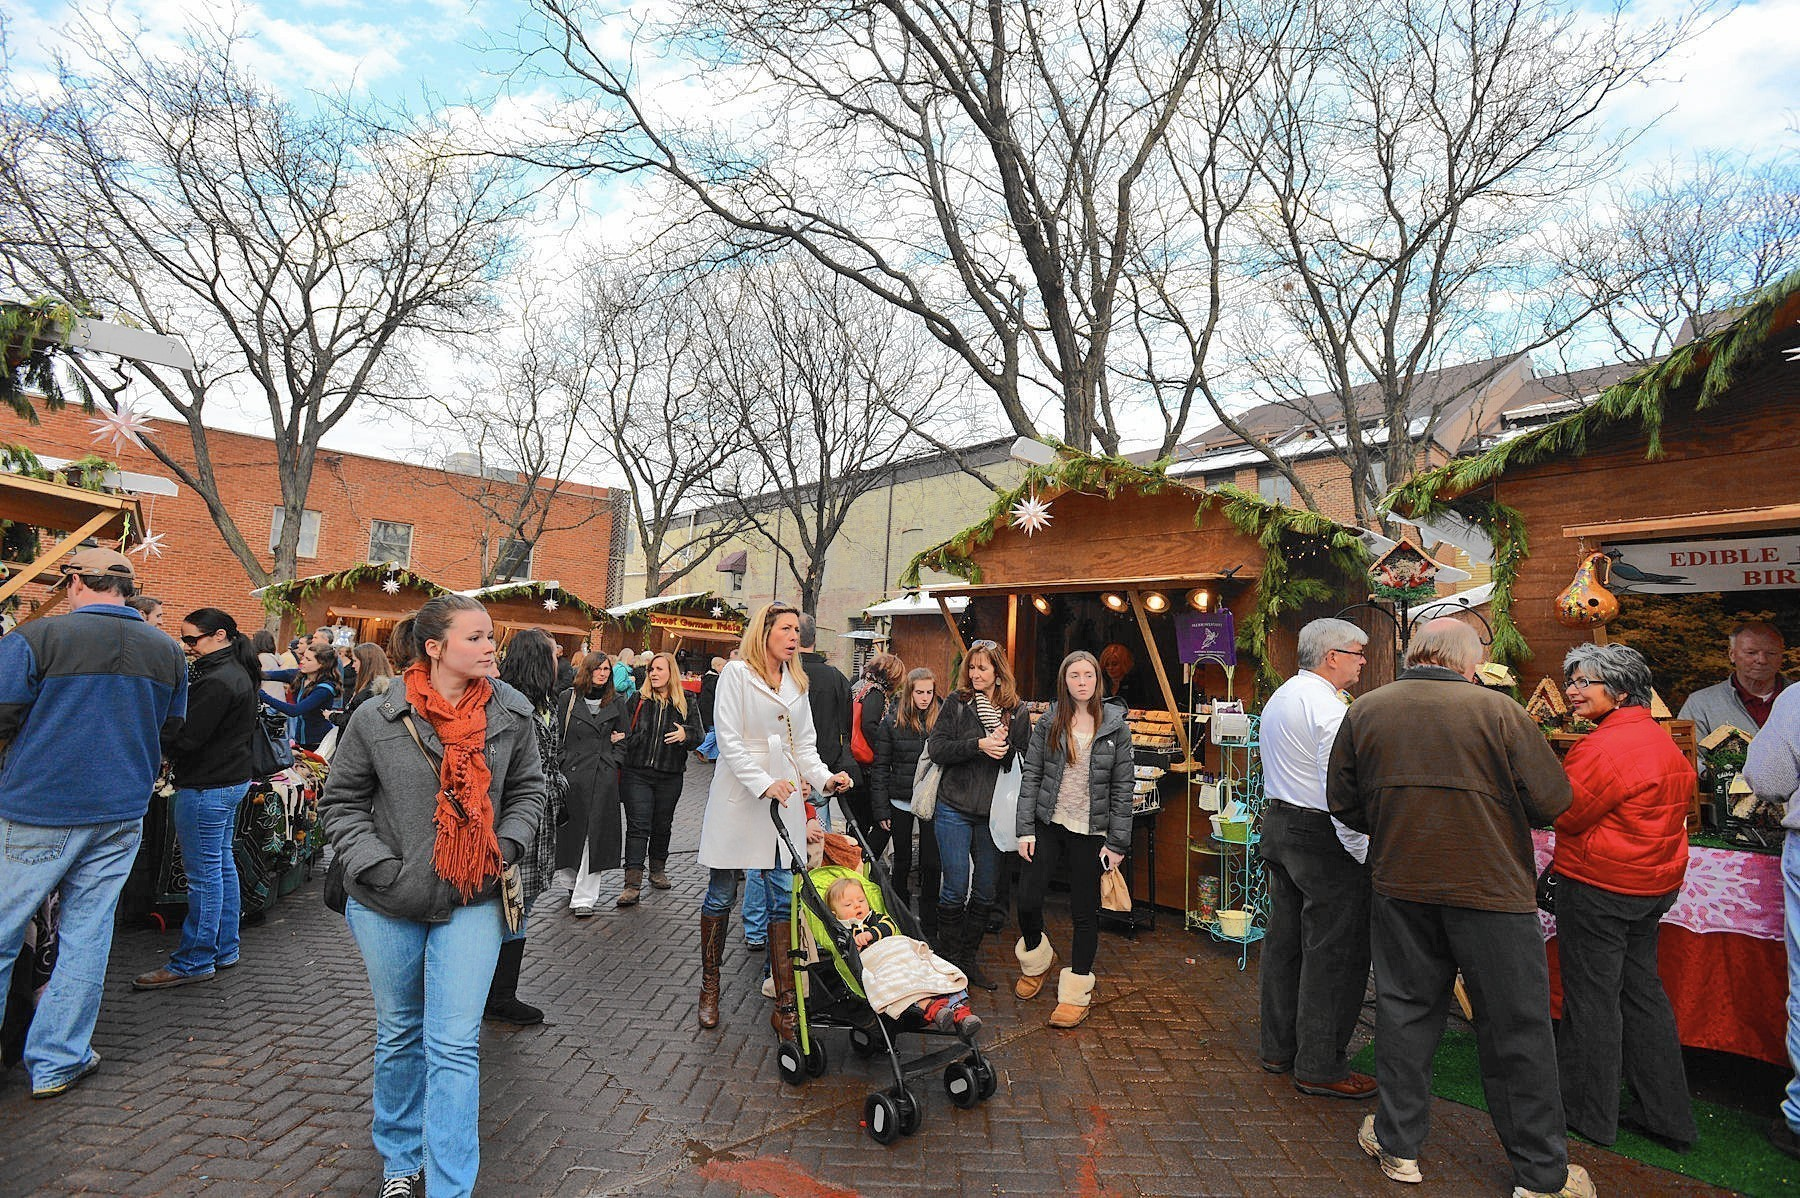 Christmas City Village opens Nov. 21 in downtown Bethlehem. - The Morning Call